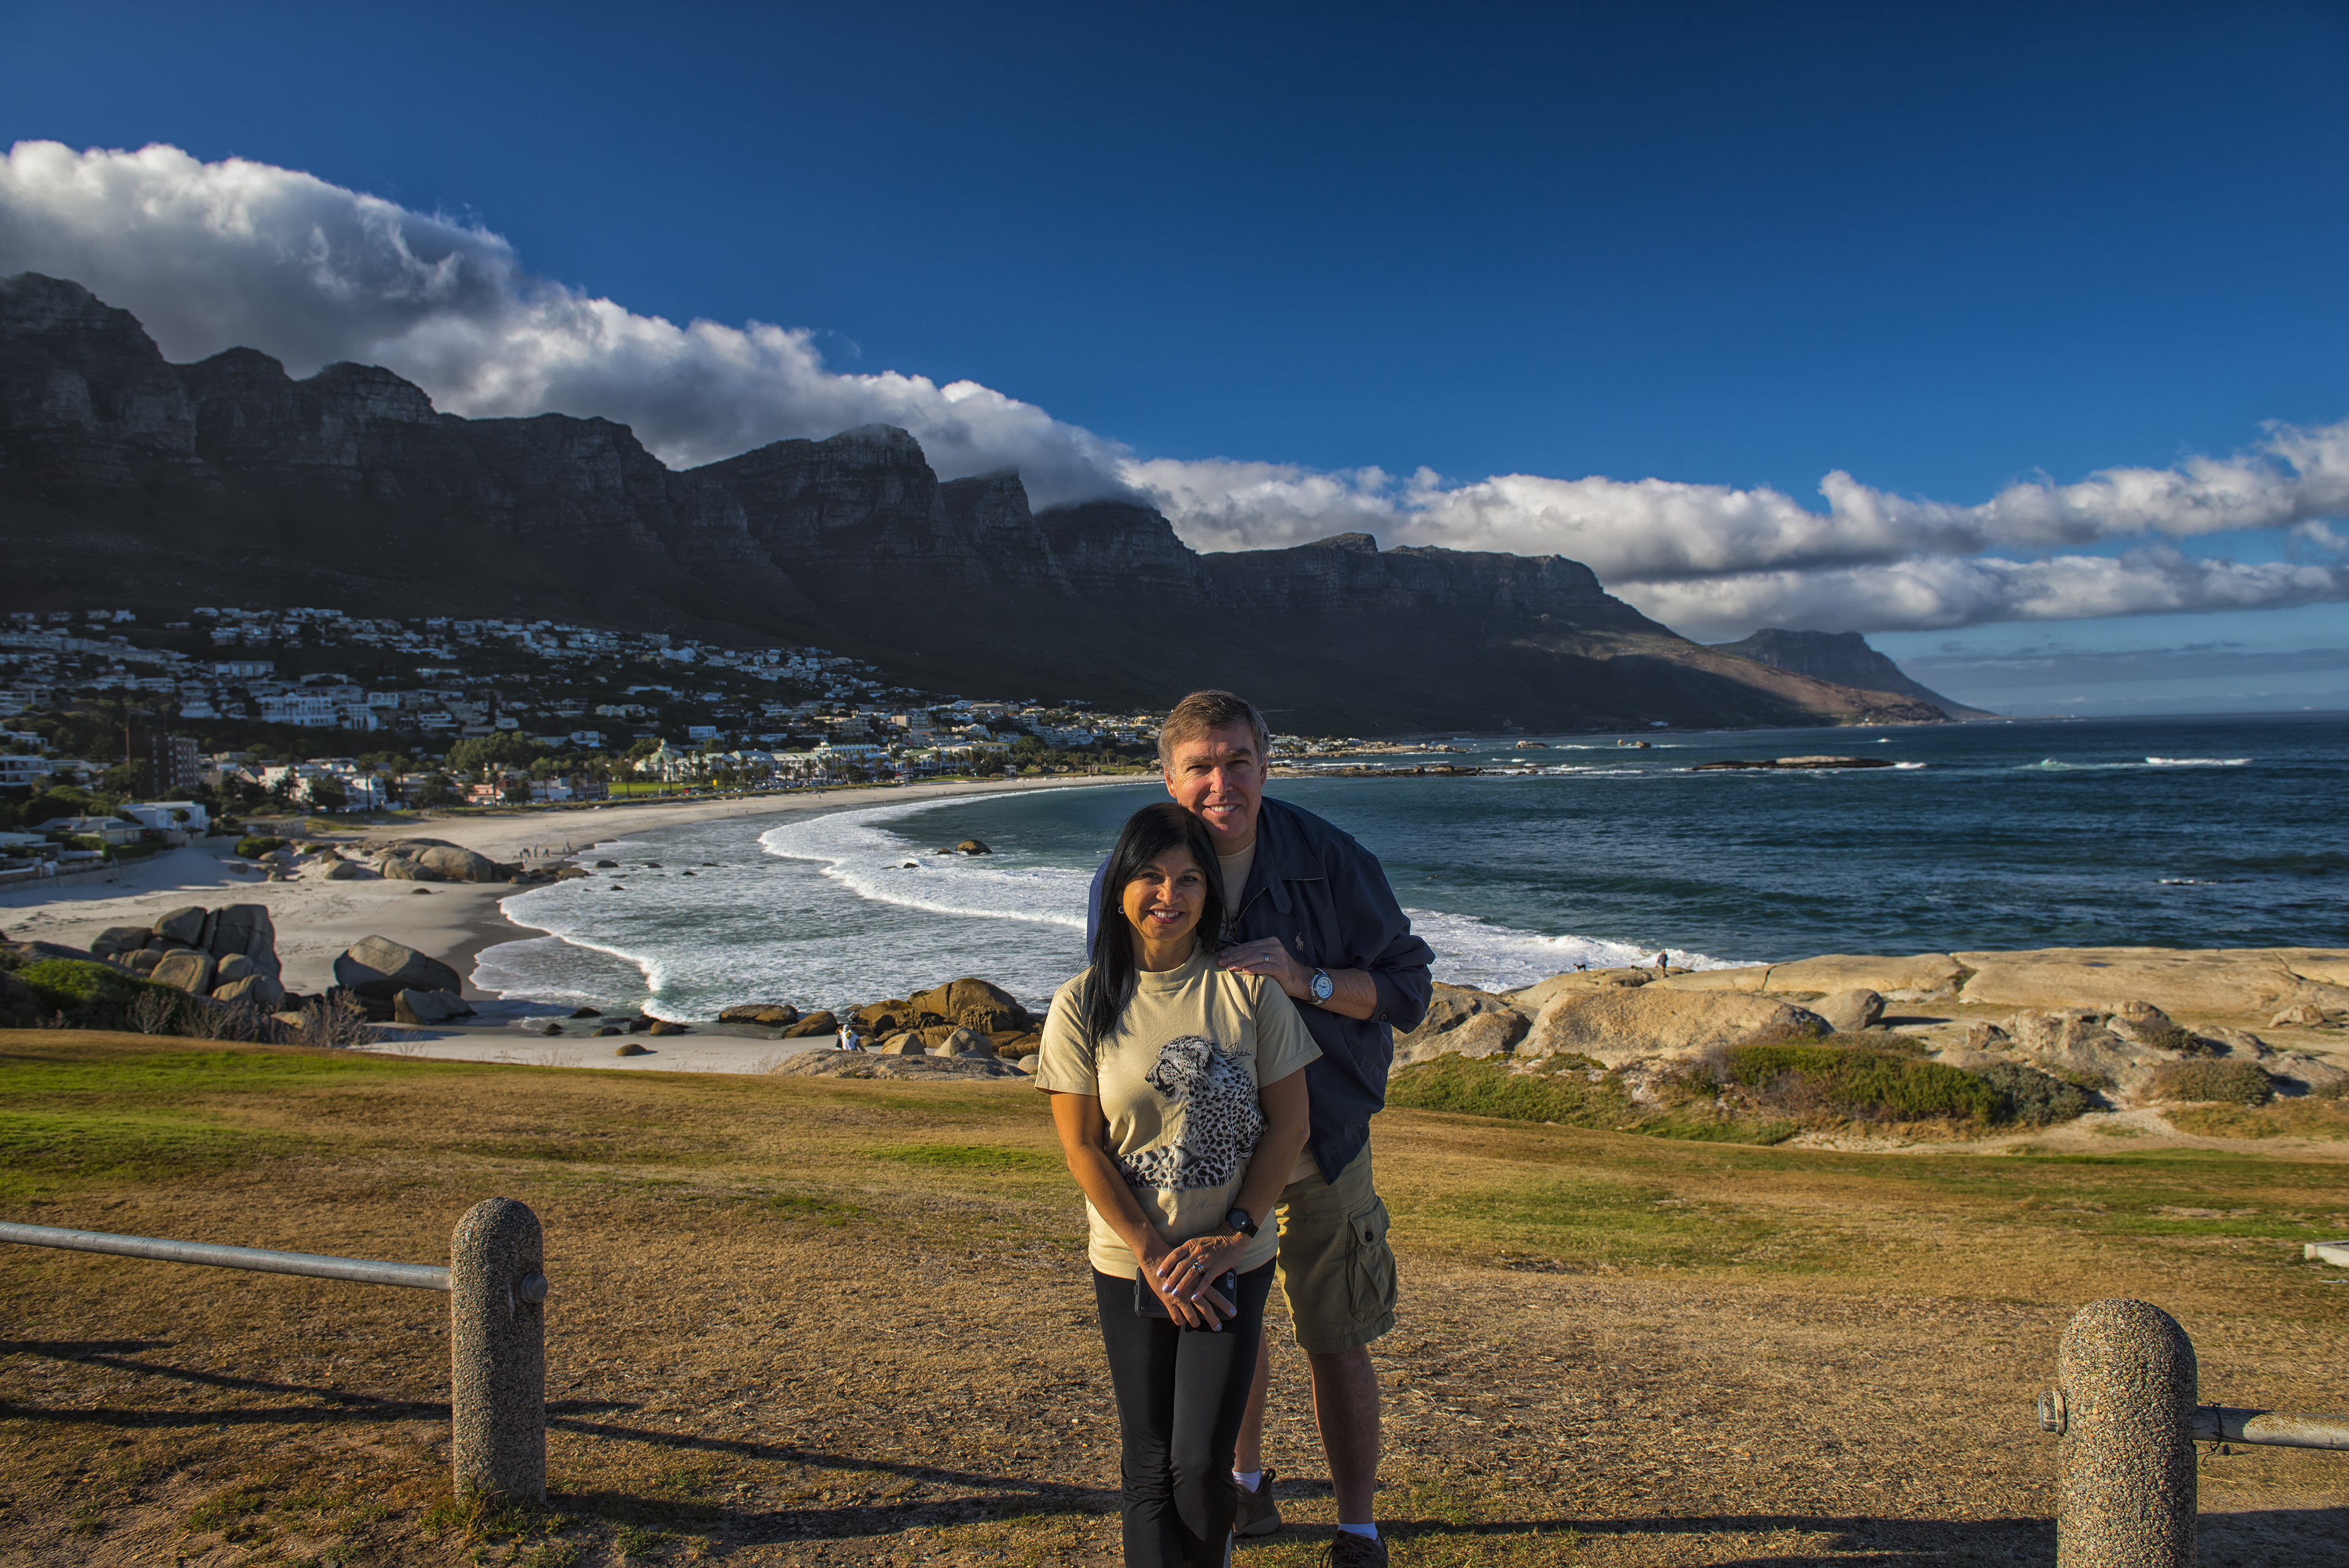 12 Apostles in the Background